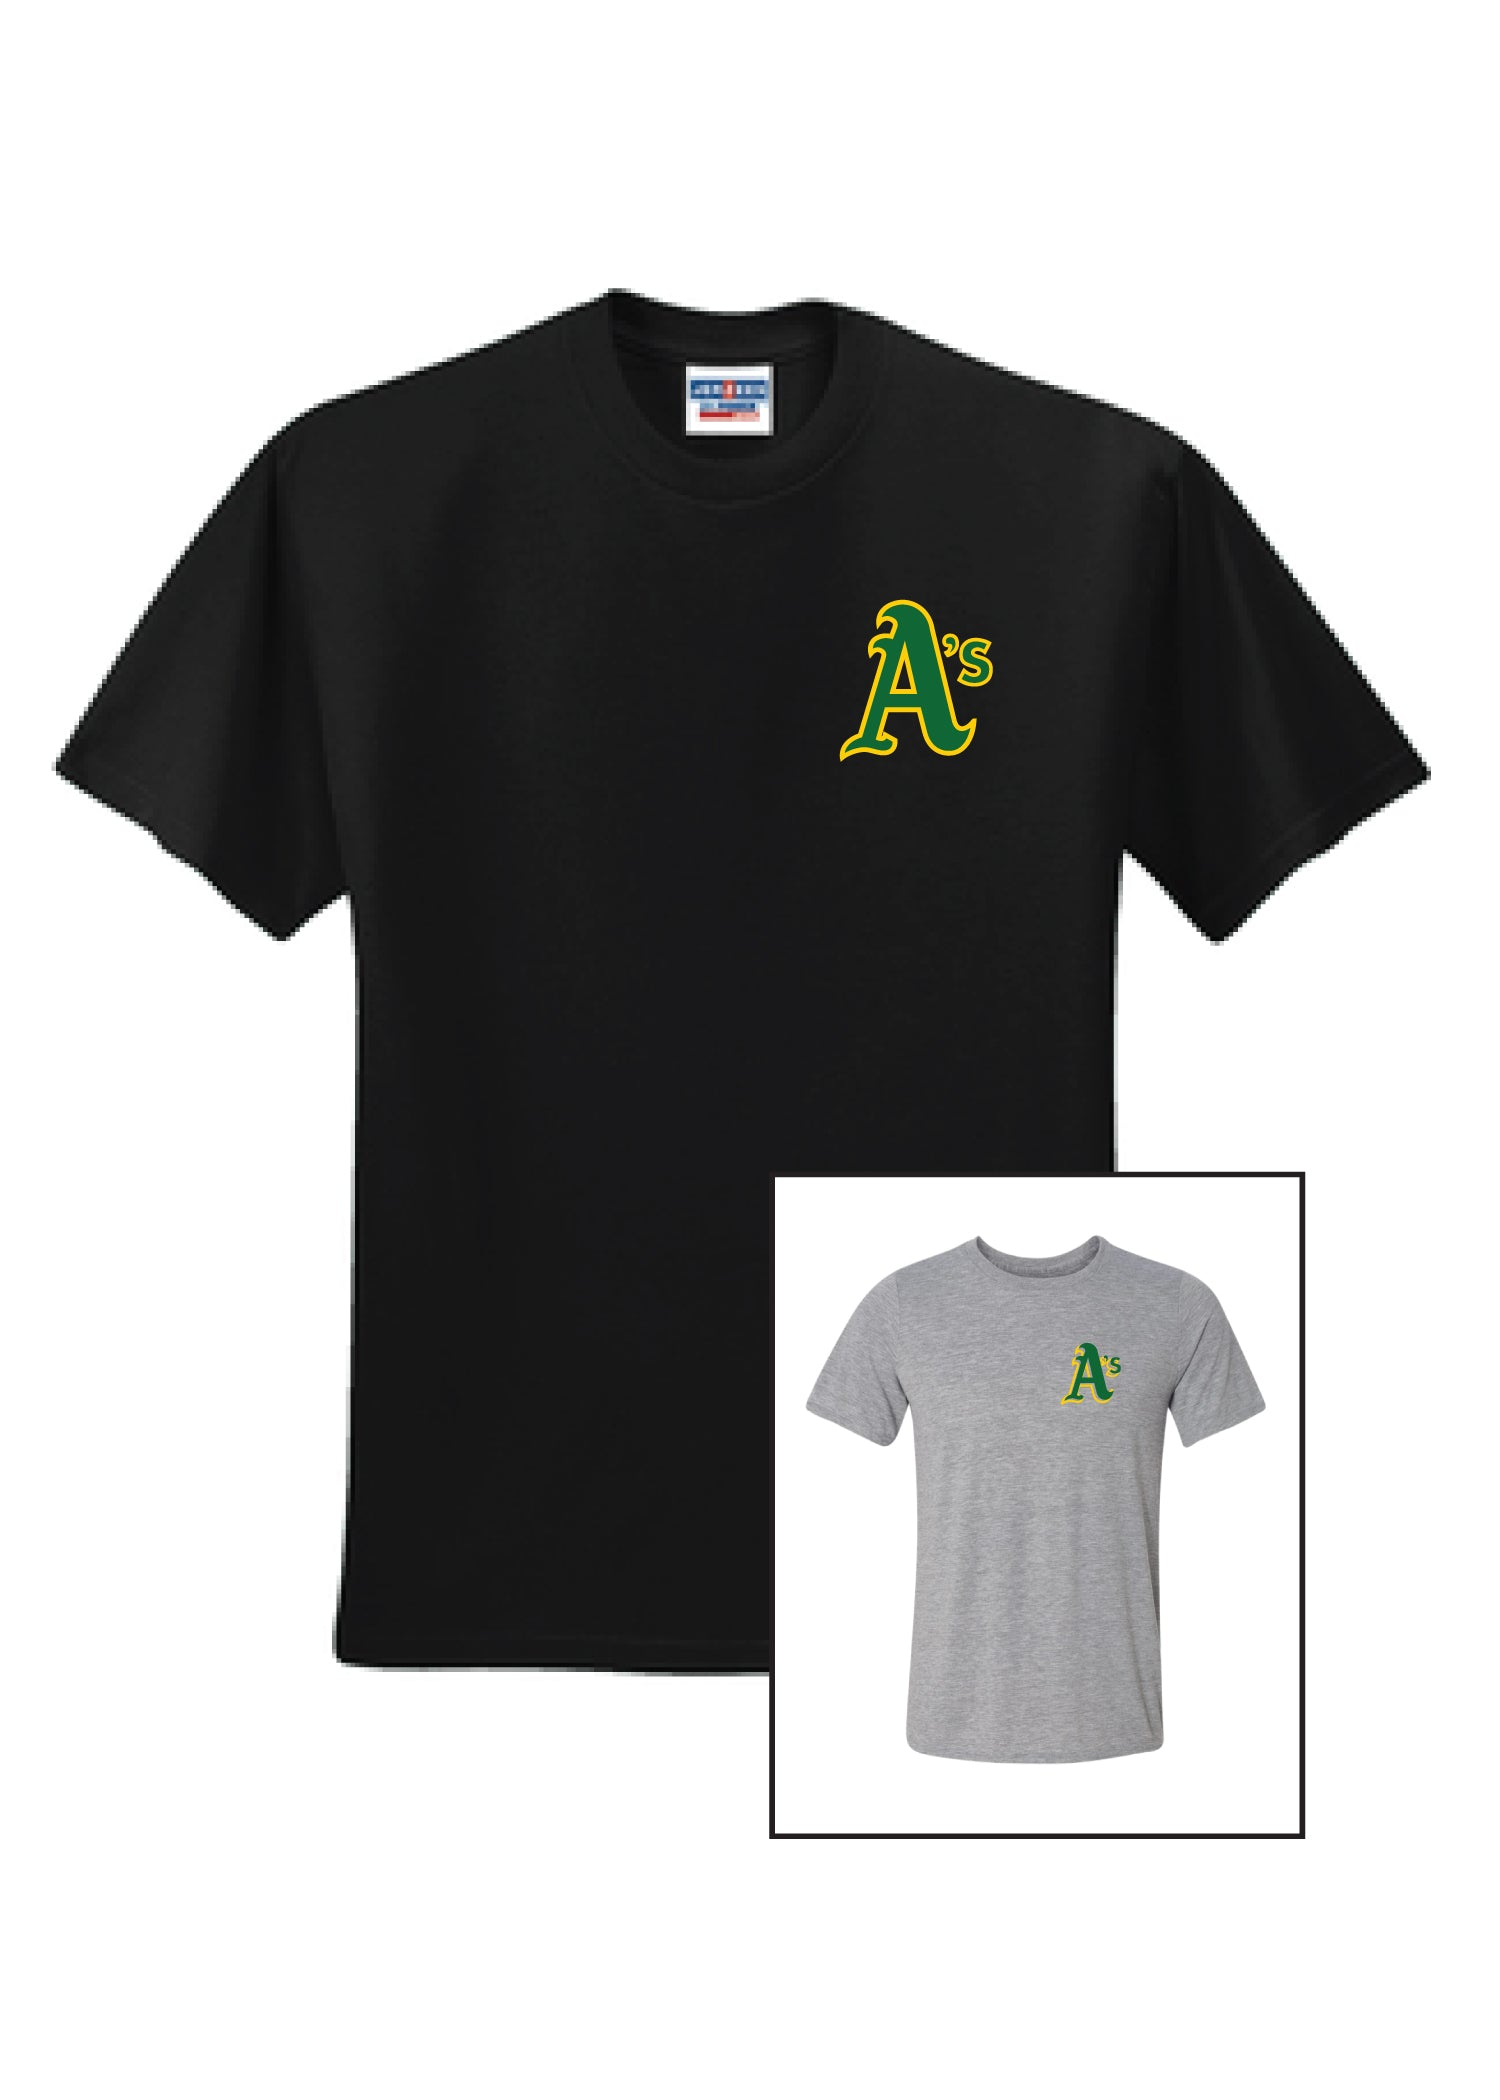 A's Logo Dri-fit T-Shirt Youth